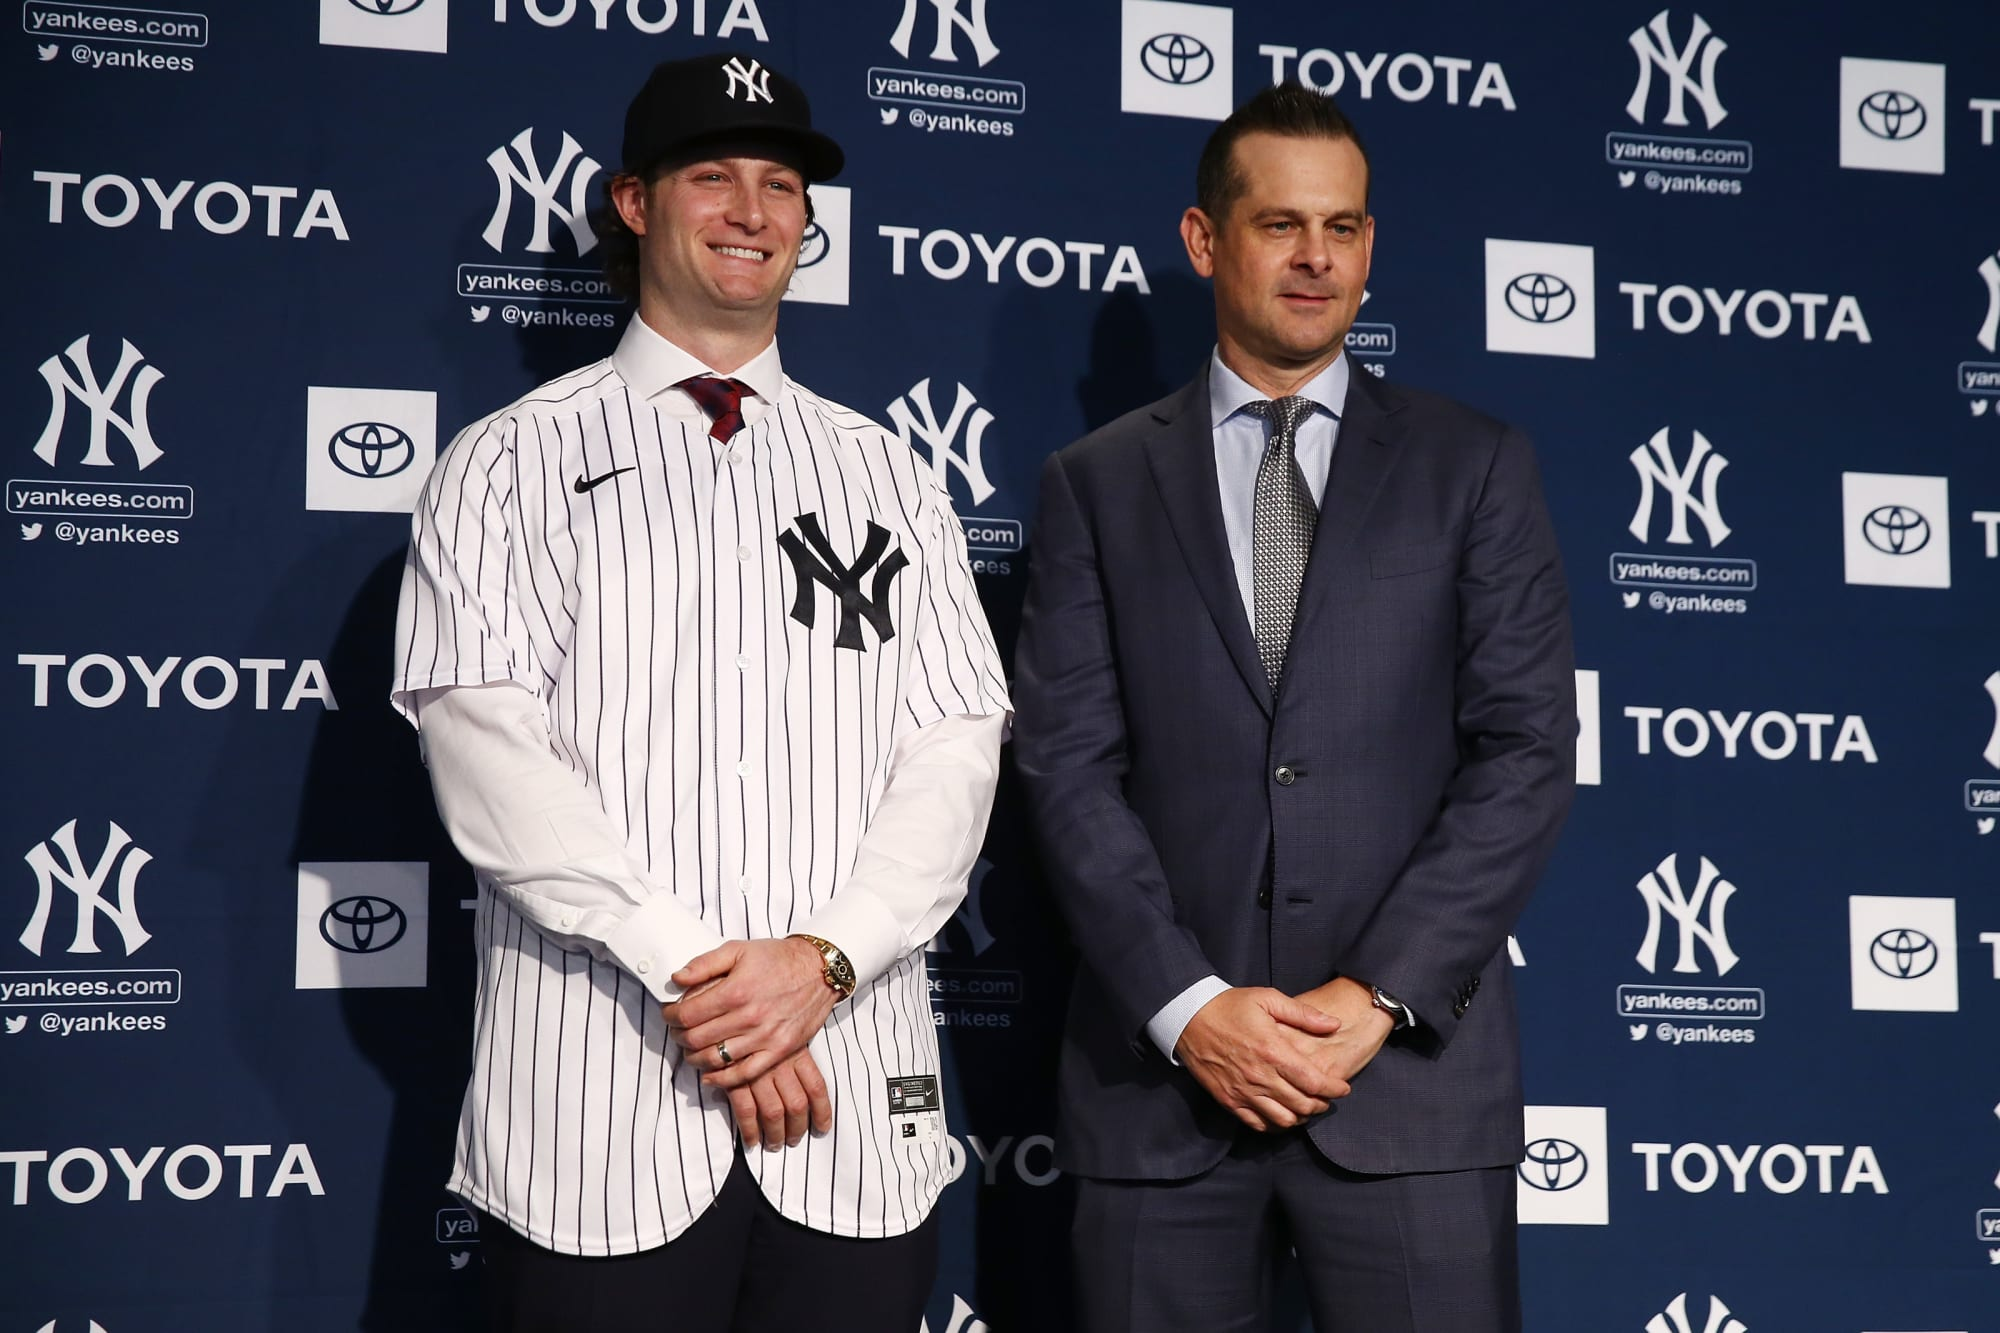 Yankees: 3 Ways Aaron Boone Can Creatively Use Pitching Staff in 2020